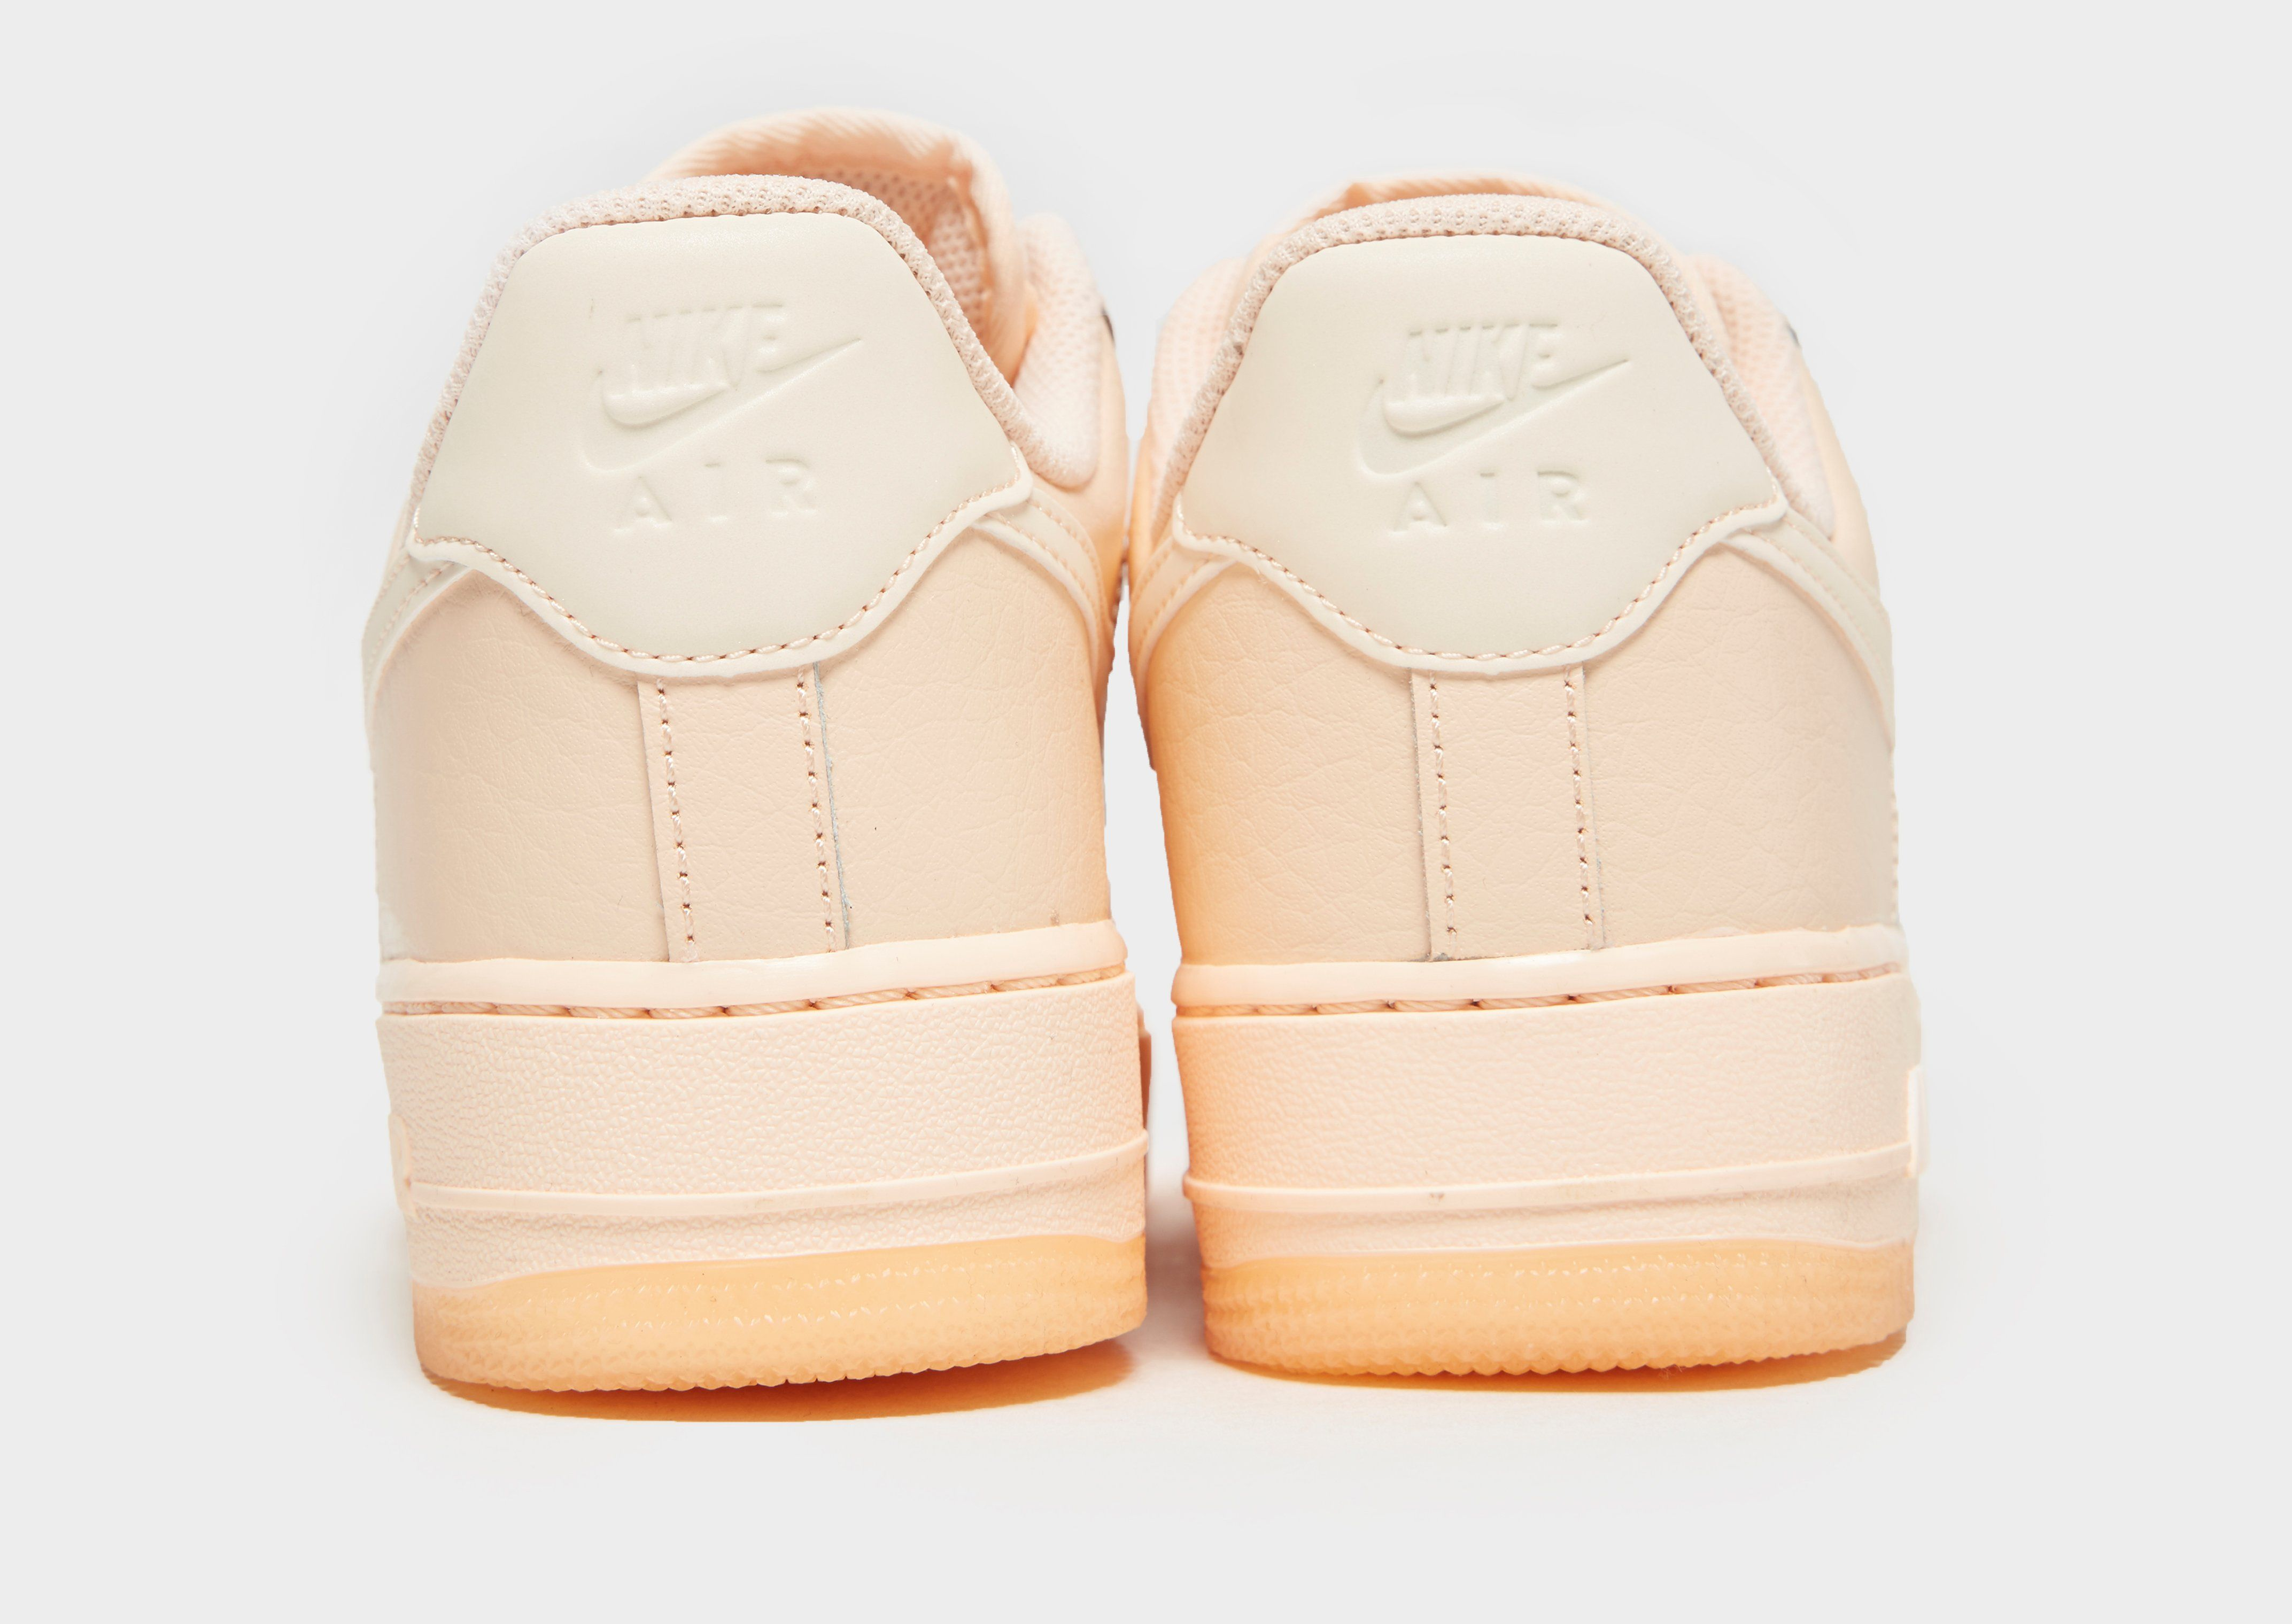 Nike Air Force 1 Essential Low Women's